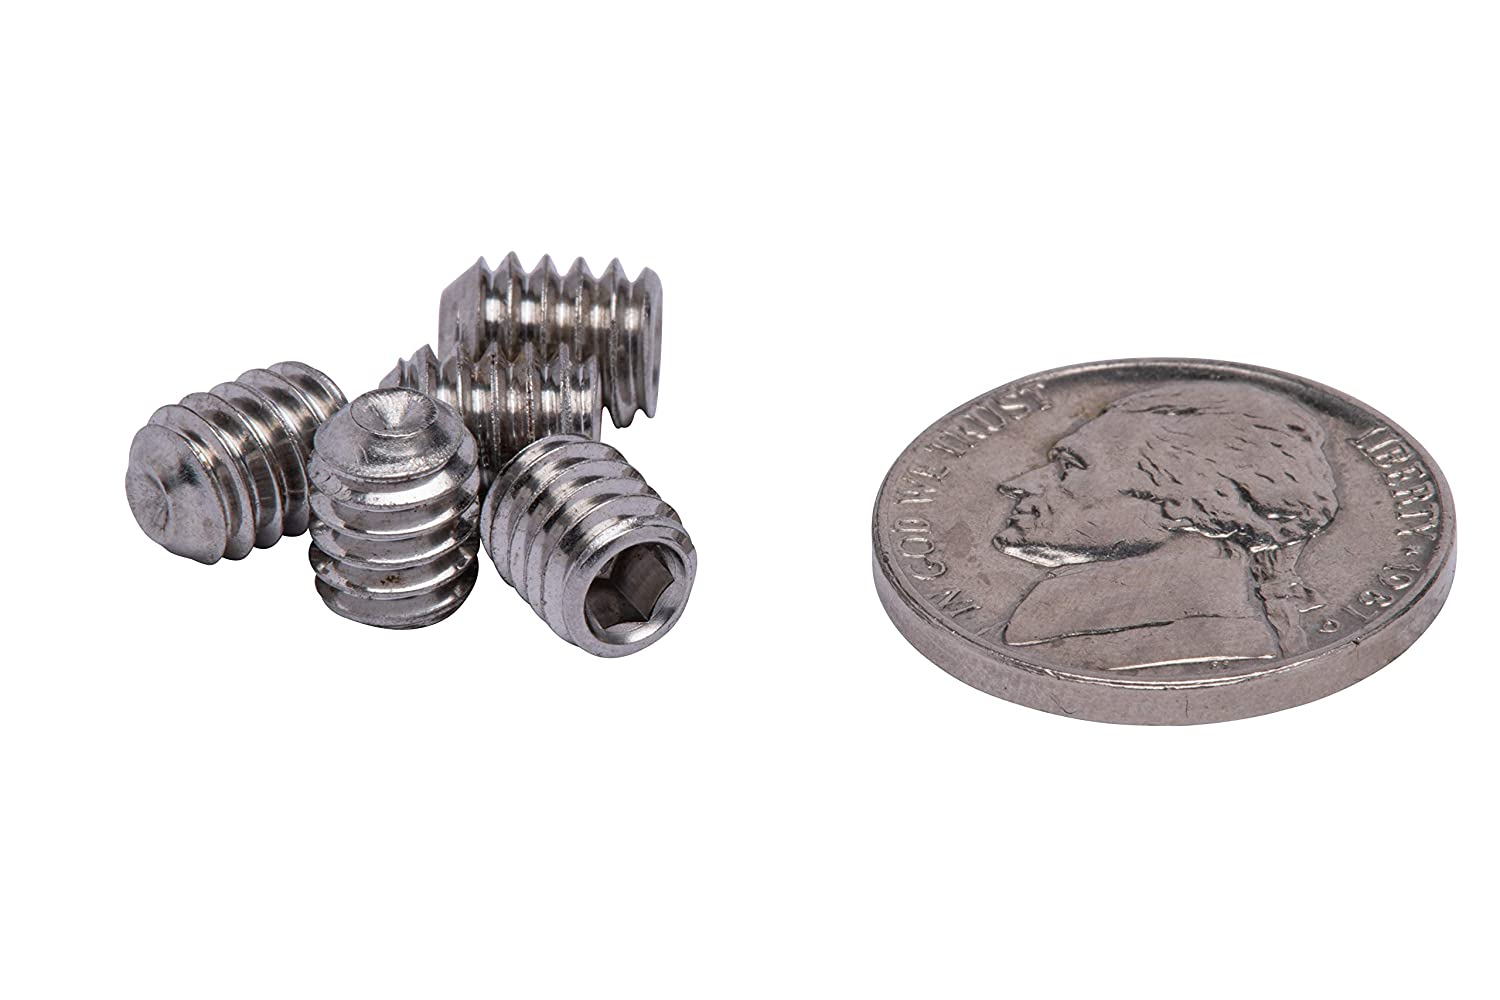 18-8 Stainless Steel Screws by Bolt Dropper 304 50 pc #8-32 X 1 Stainless Set Screw with Hex Allen Head Drive and Oval Point